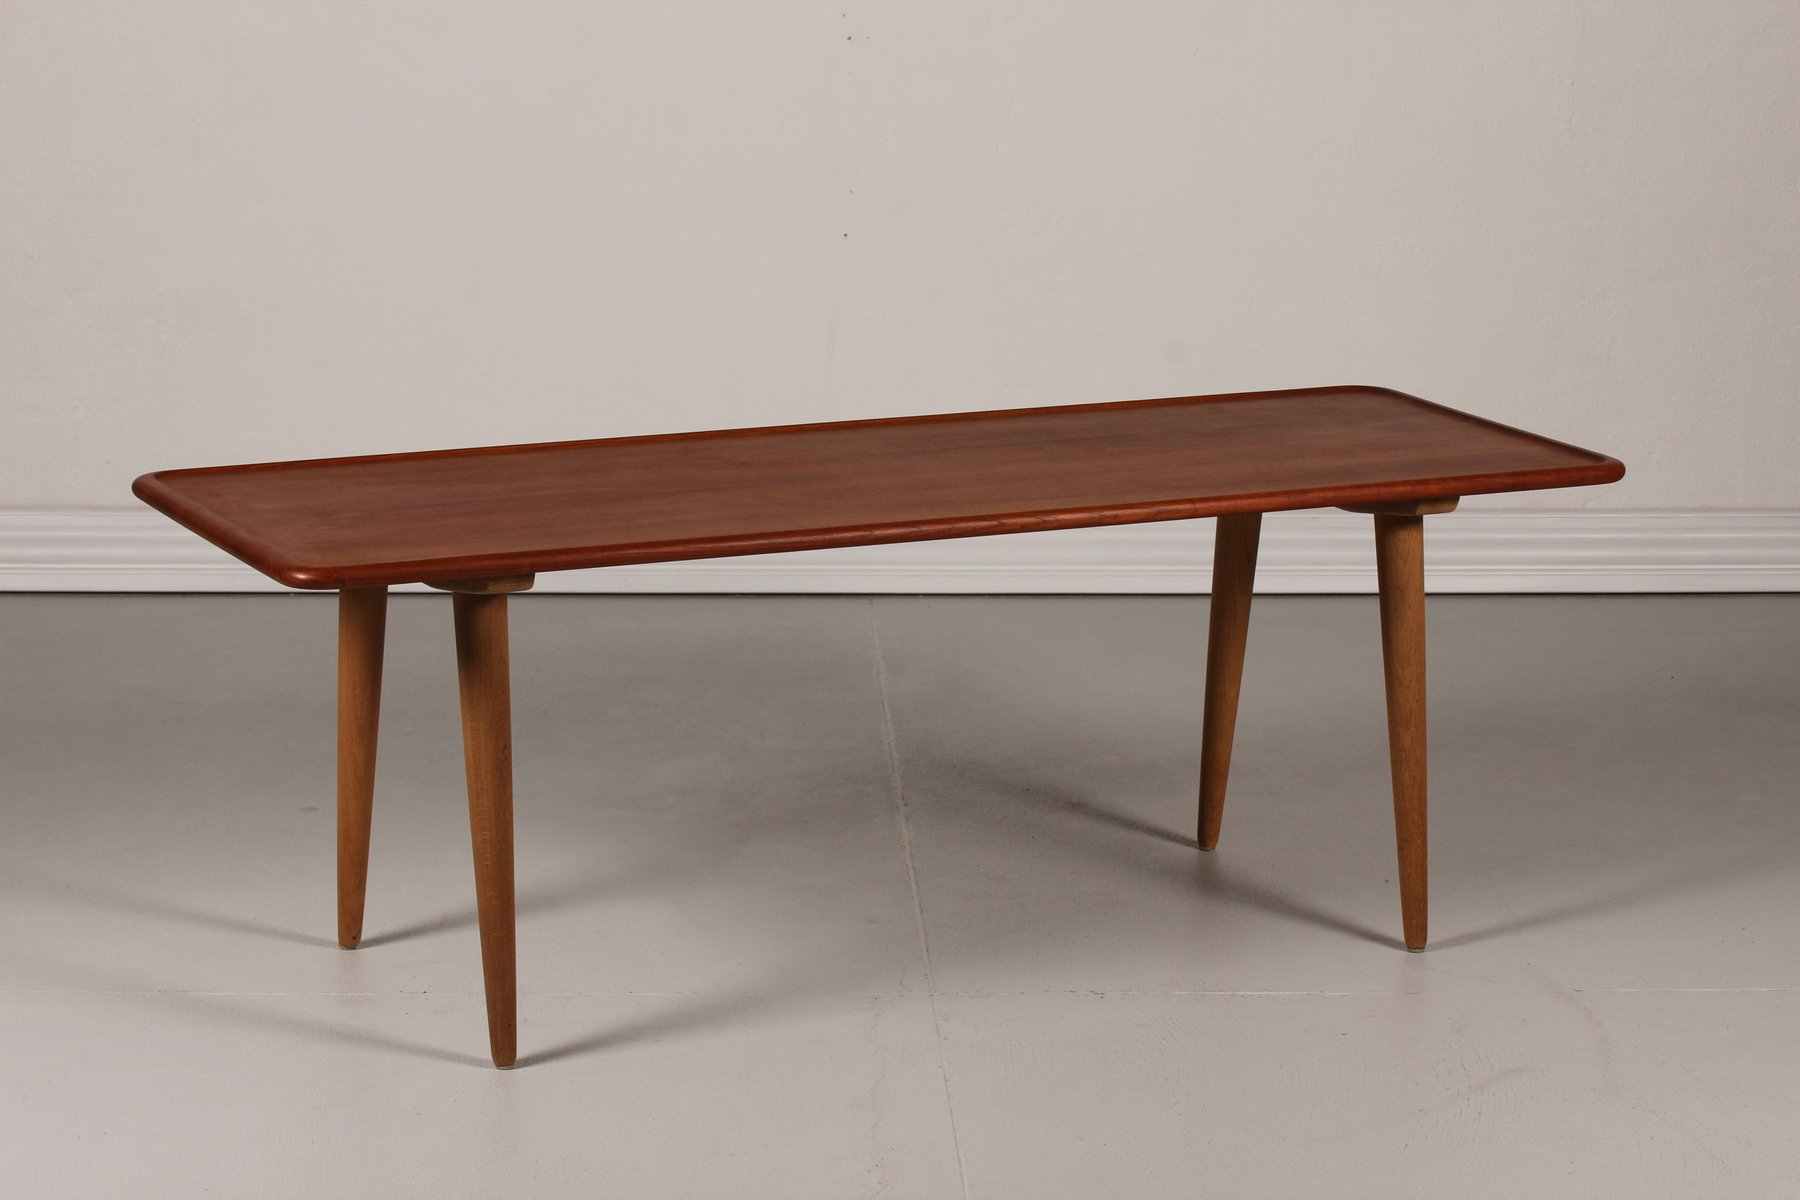 Danish AT 11 Teak Coffee Table by Hans J Wegner for Andreas Tuck